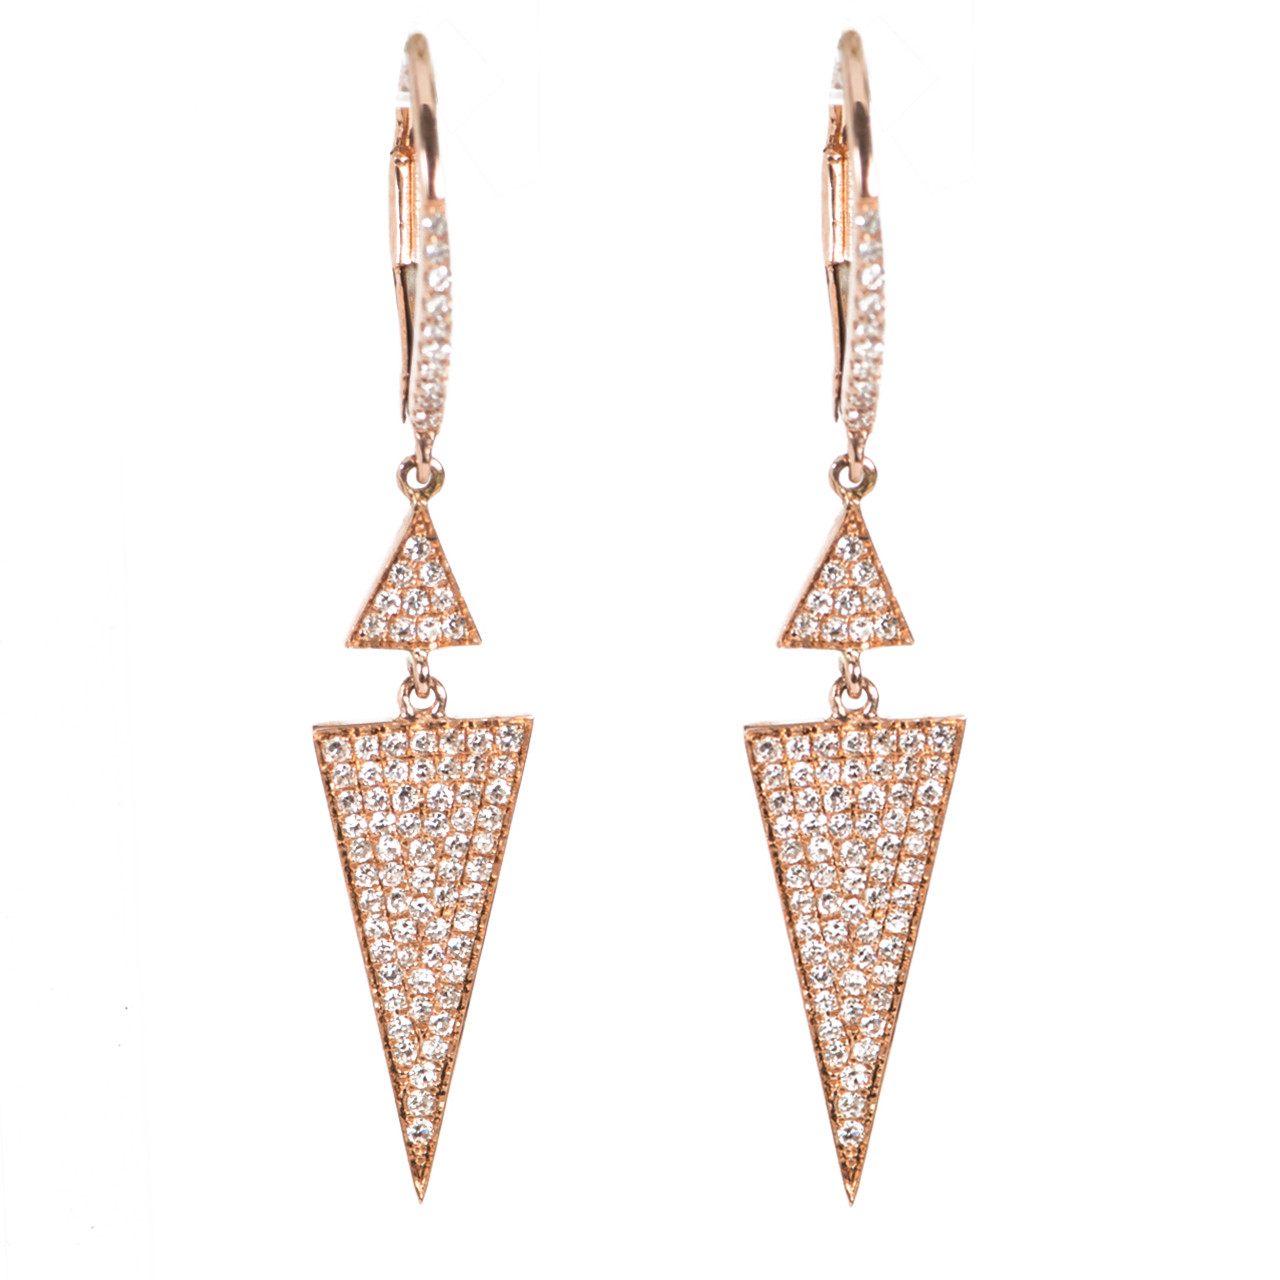 158ba1992b57b3 ROSE GOLD TRIANGLE DANGLE EARRINGS WITH MICRO PAVE DIAMONDS BY DOVES |  DESIGNER JEWELRY DOWNTOWN NYC